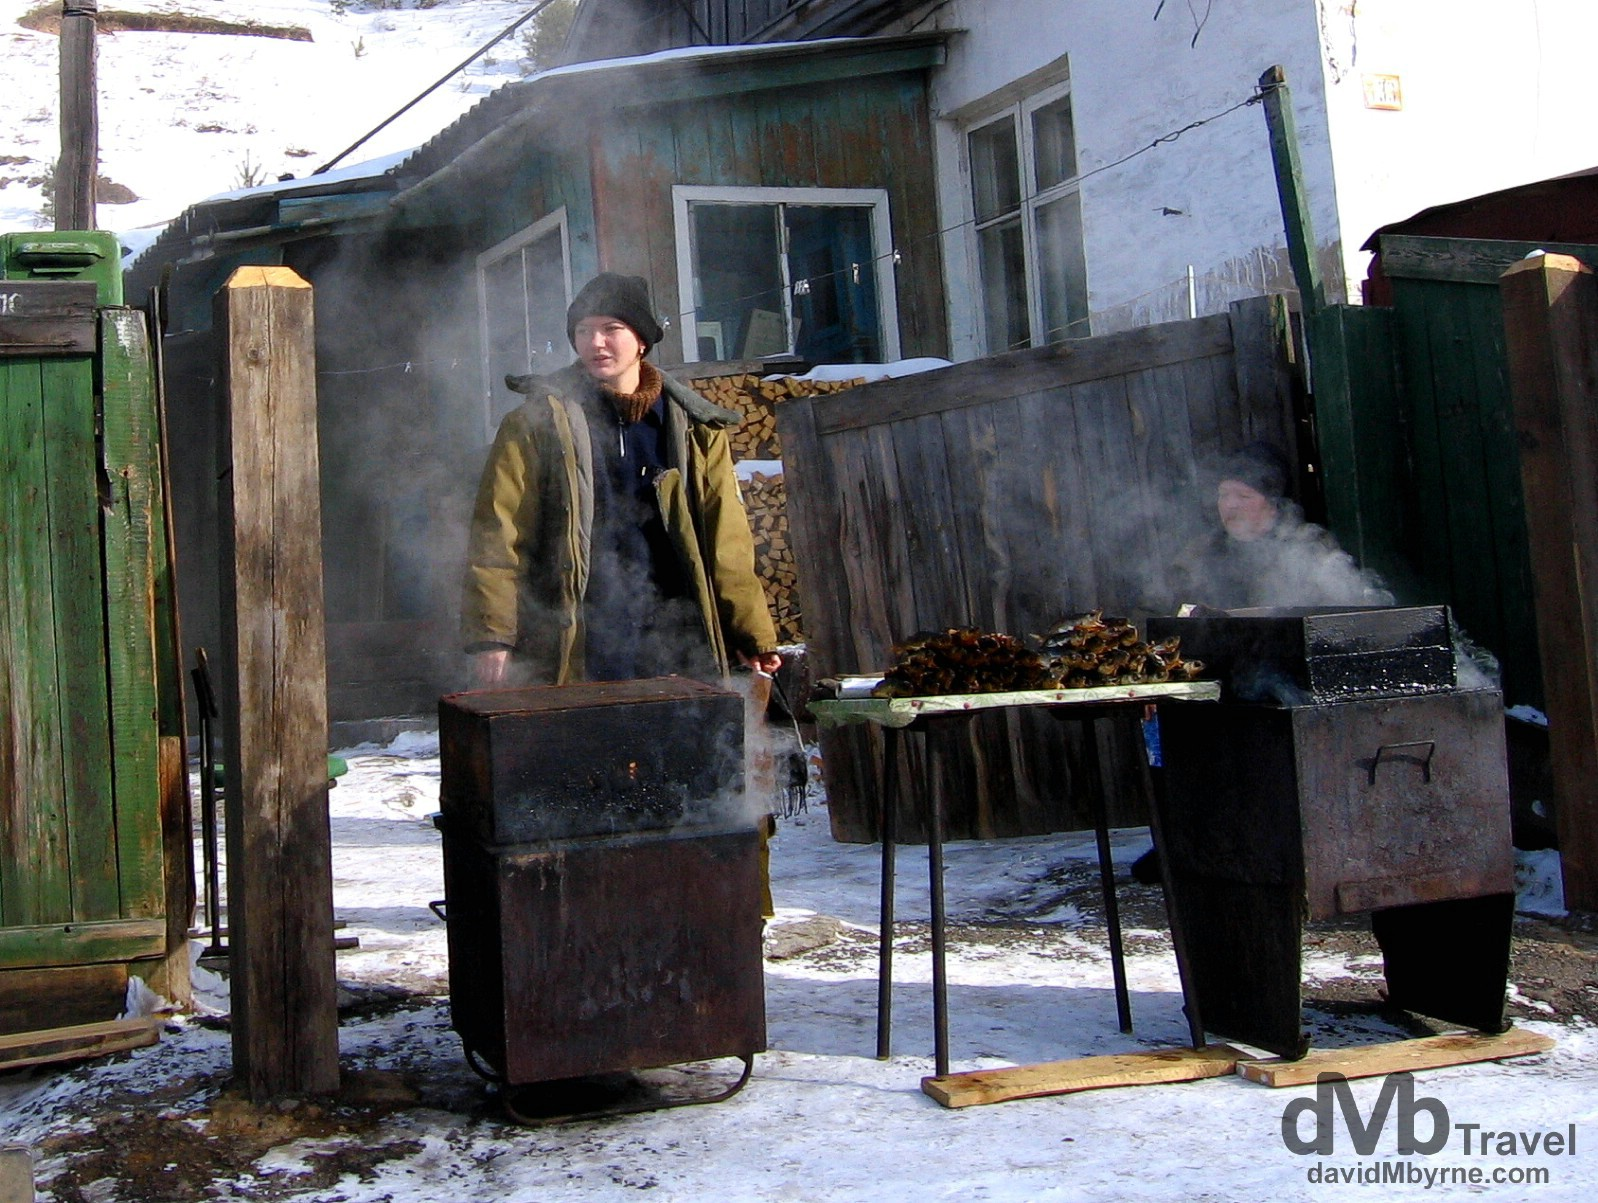 Omul sellers in the village of Listvyanka on the shores of Lake Baikal in Siberian Russia. February 18, 2006.